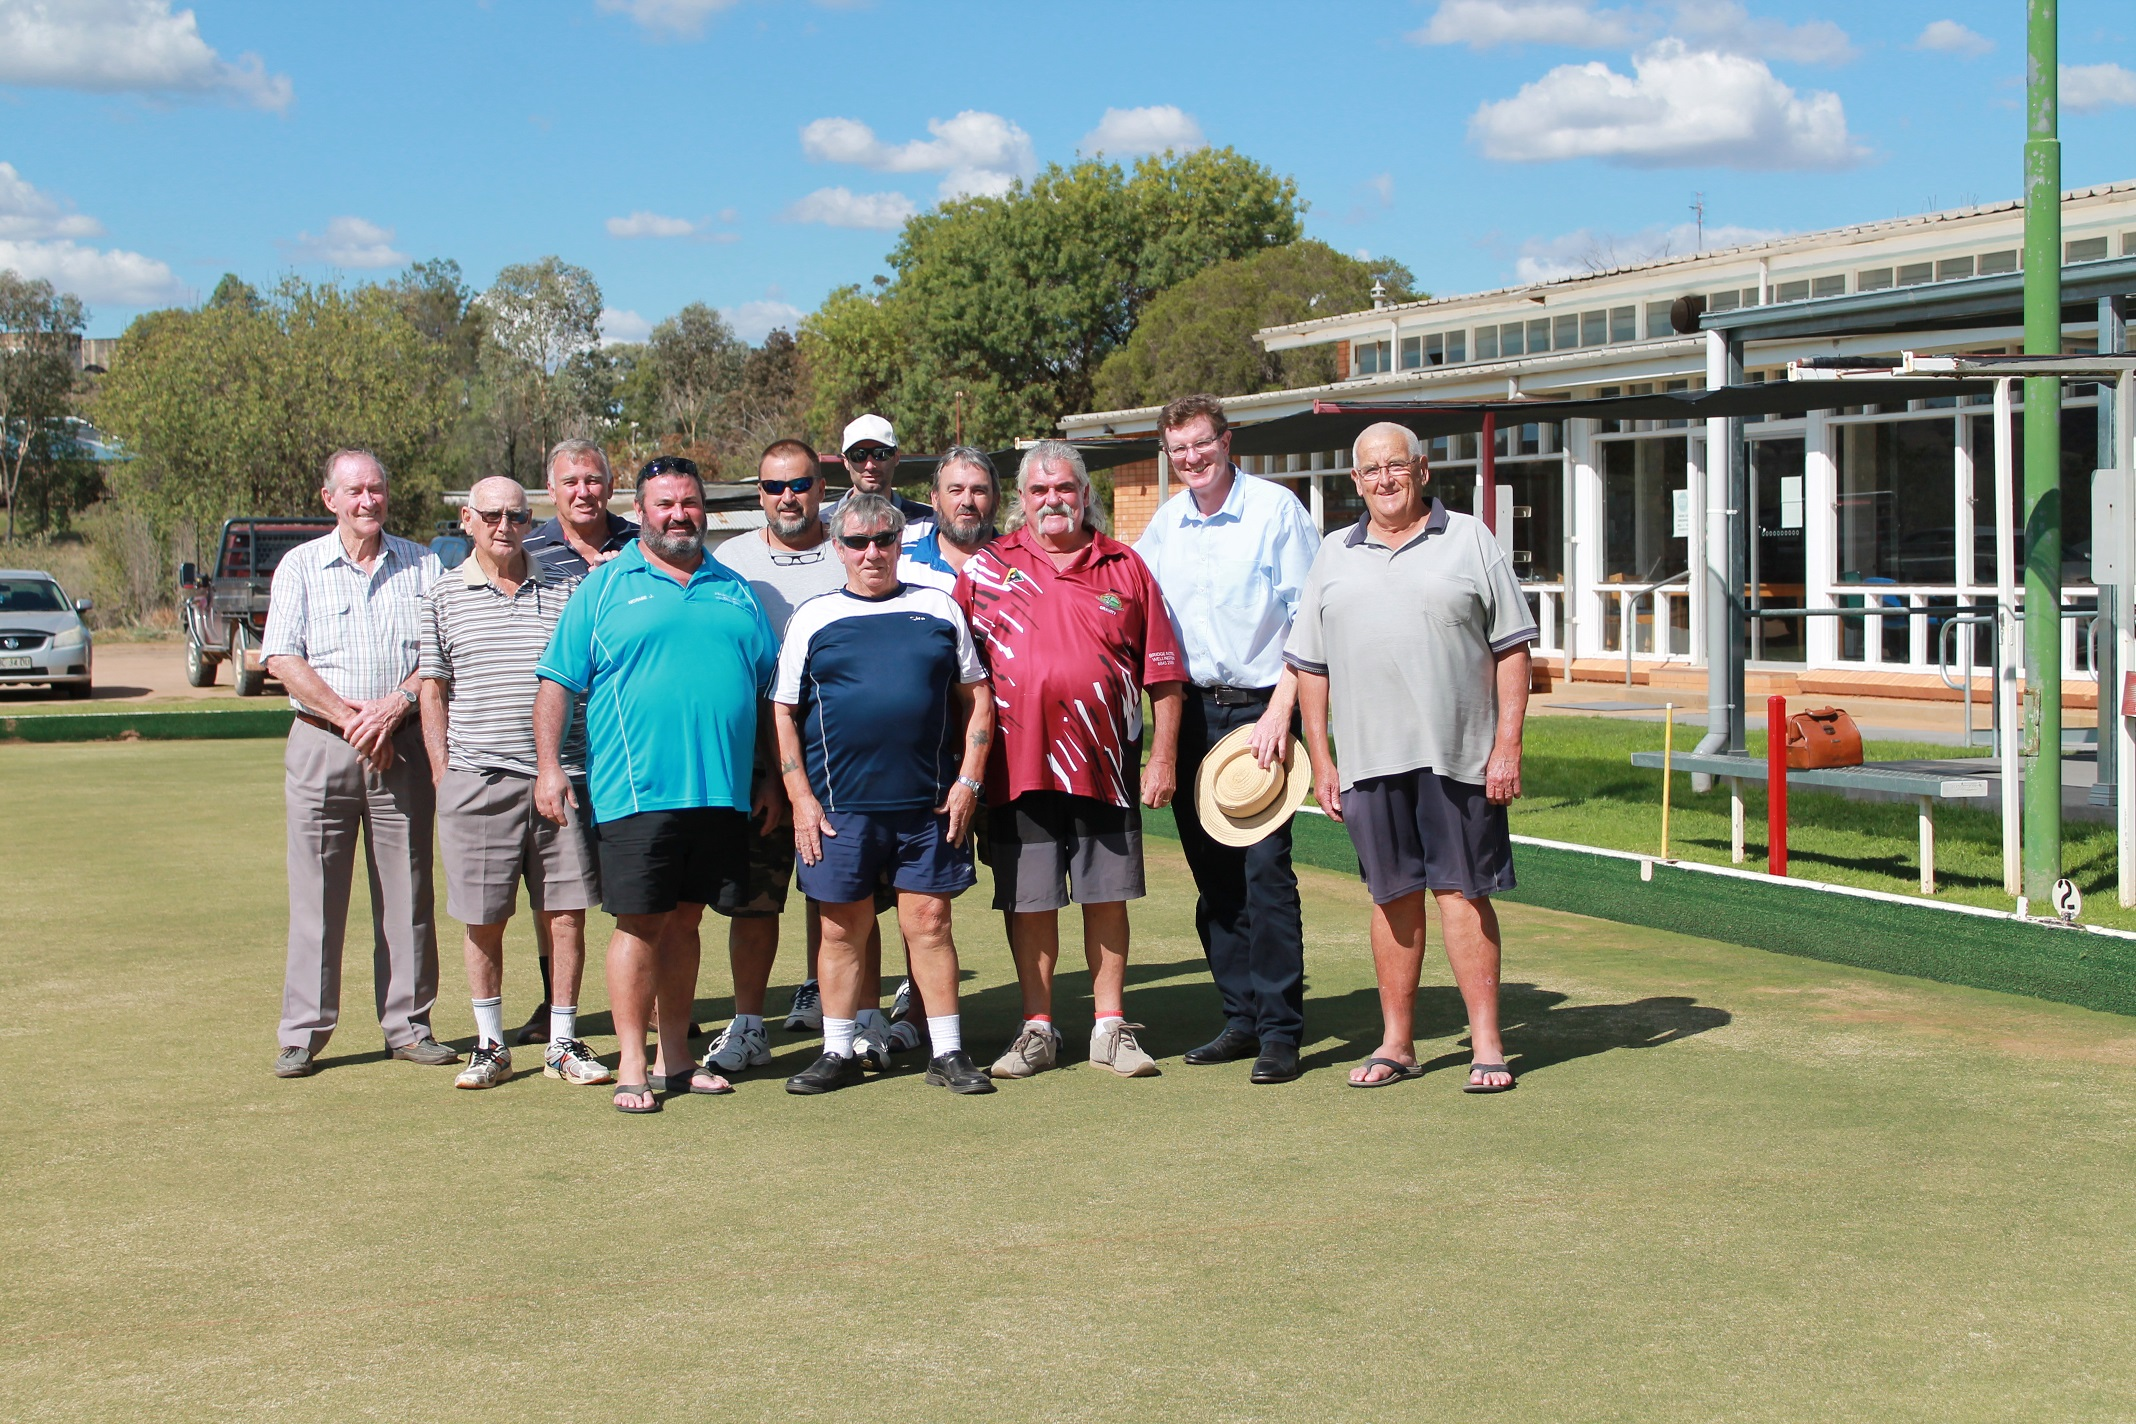 WELLINGTON BOWLING CLUB STRIKES $31,500 IN FEDERAL FUNDING